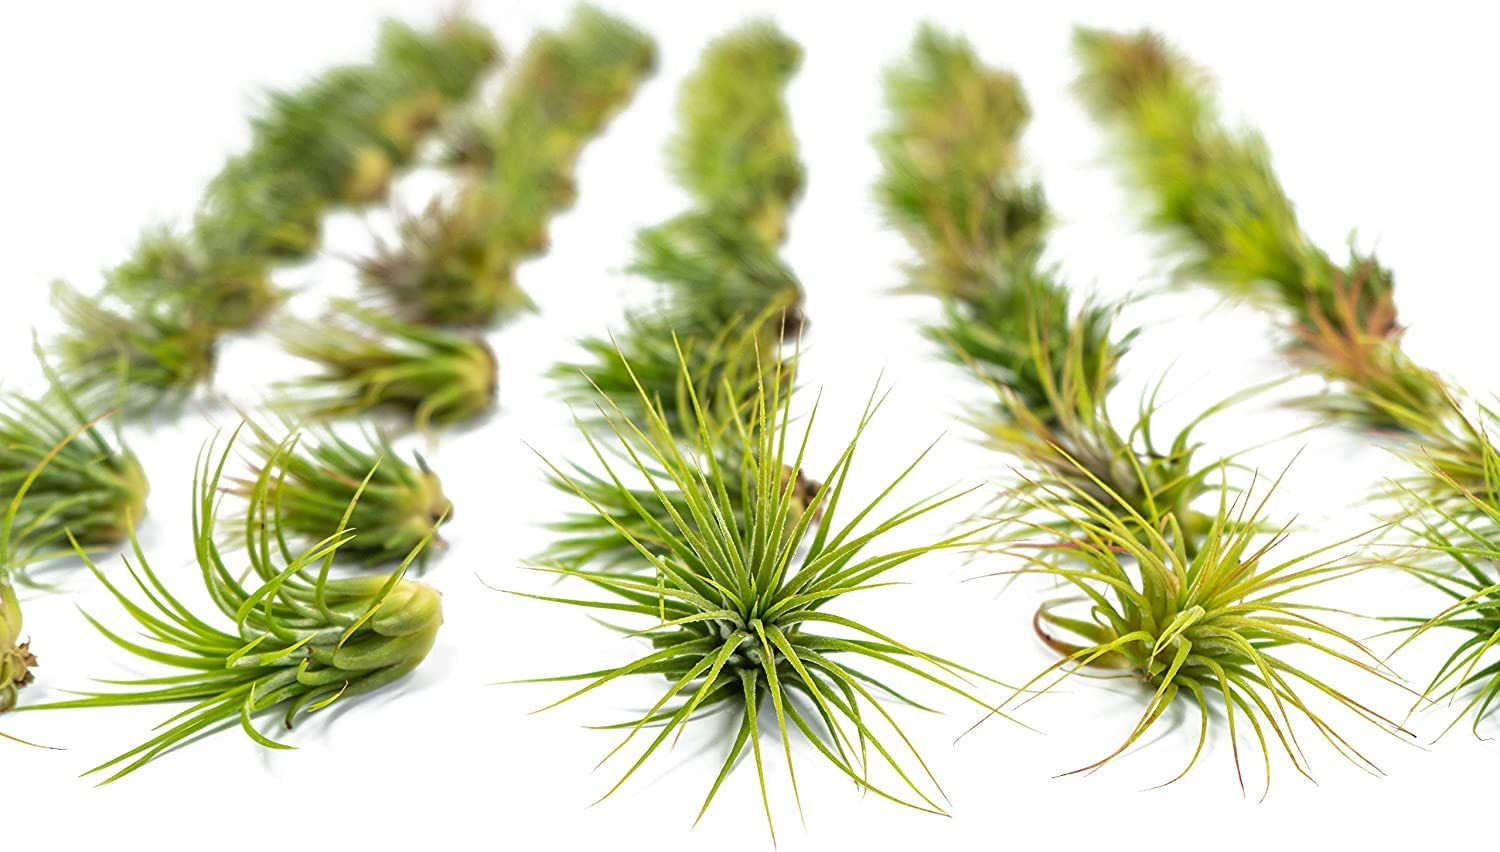 Large Ionantha Tillandsia Year-end gift Air Plant Pack to Financial sales sale 3.5 Each 2 Inches -